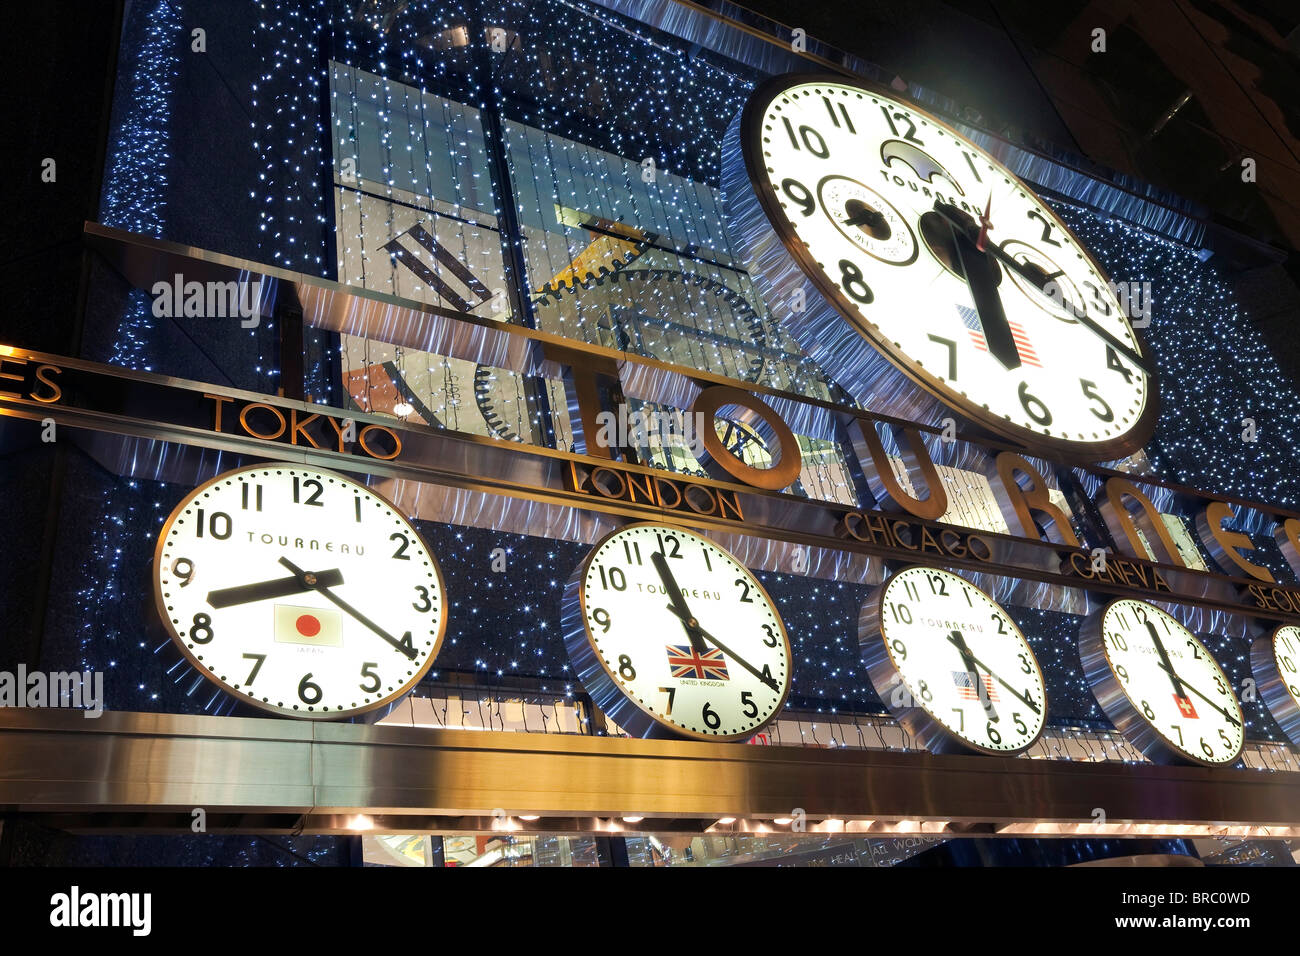 Clocks showing various world city times outside the Tourneau Store, Manhattan, New York City, New York, USA - Stock Image